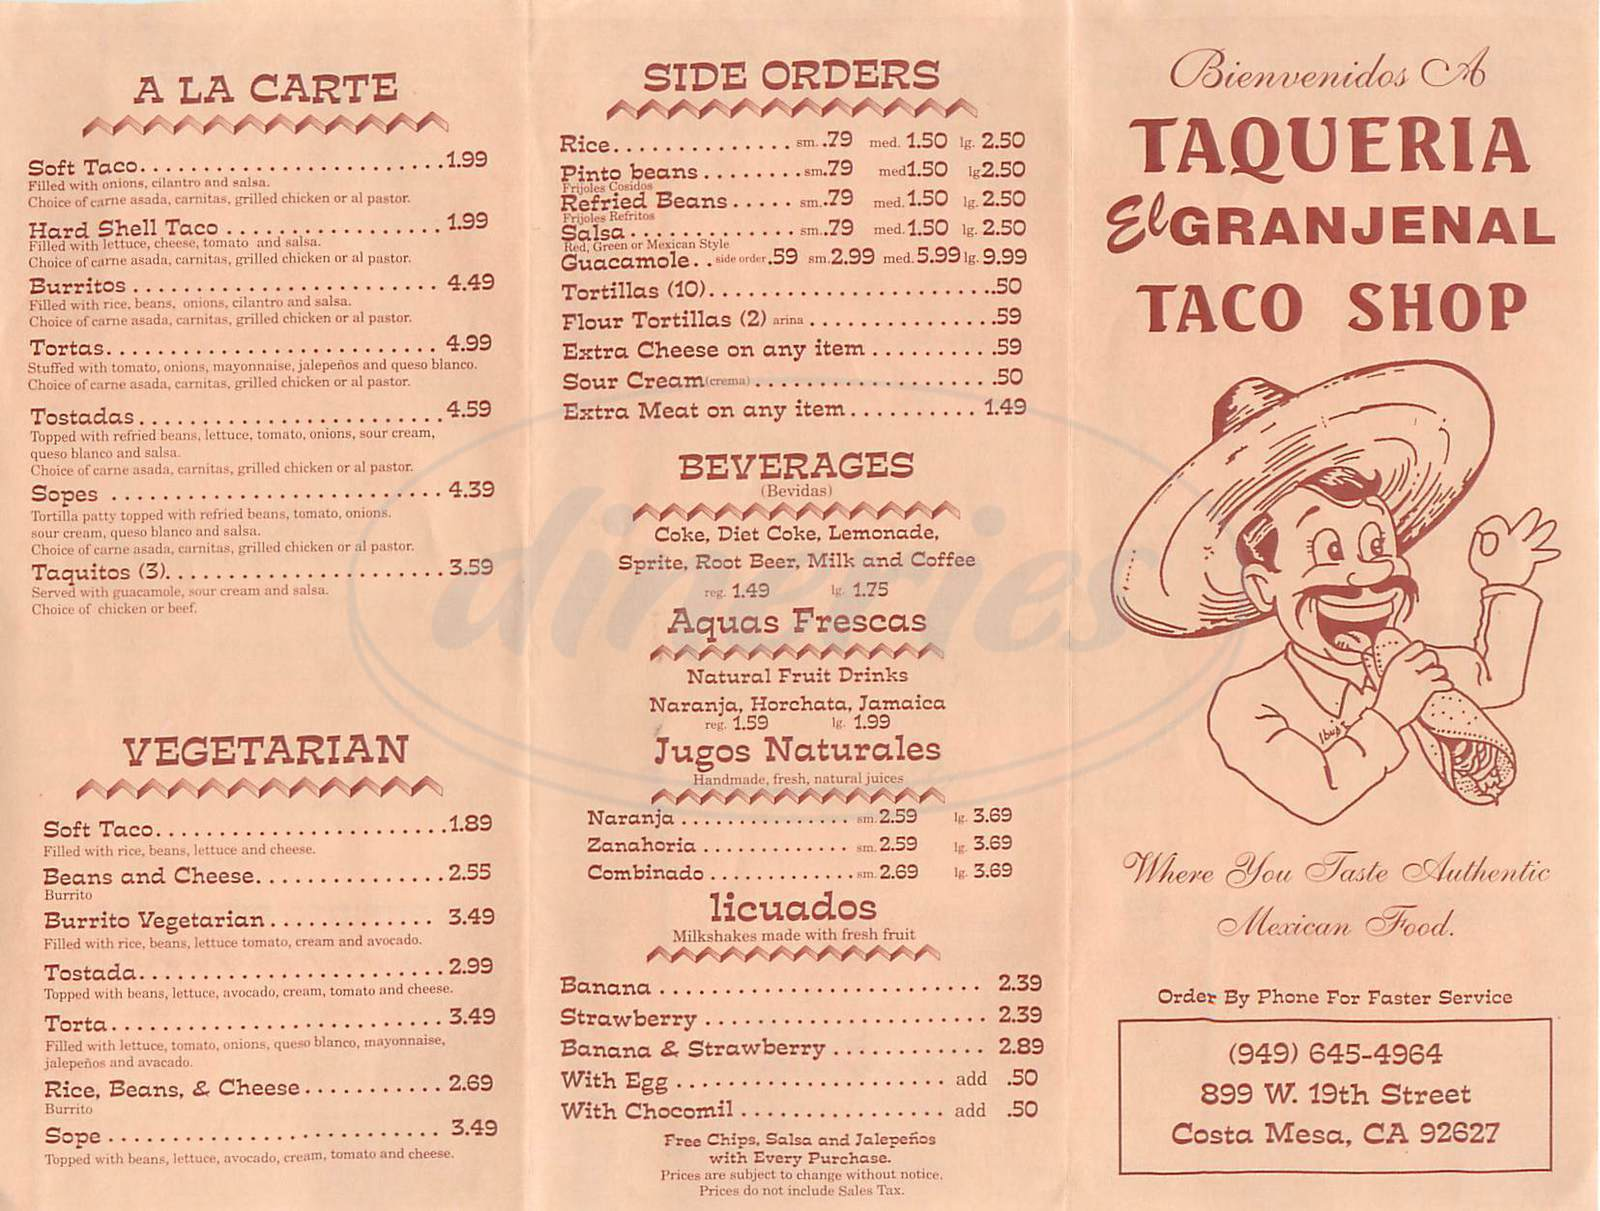 menu for Taqueria el Granjenal